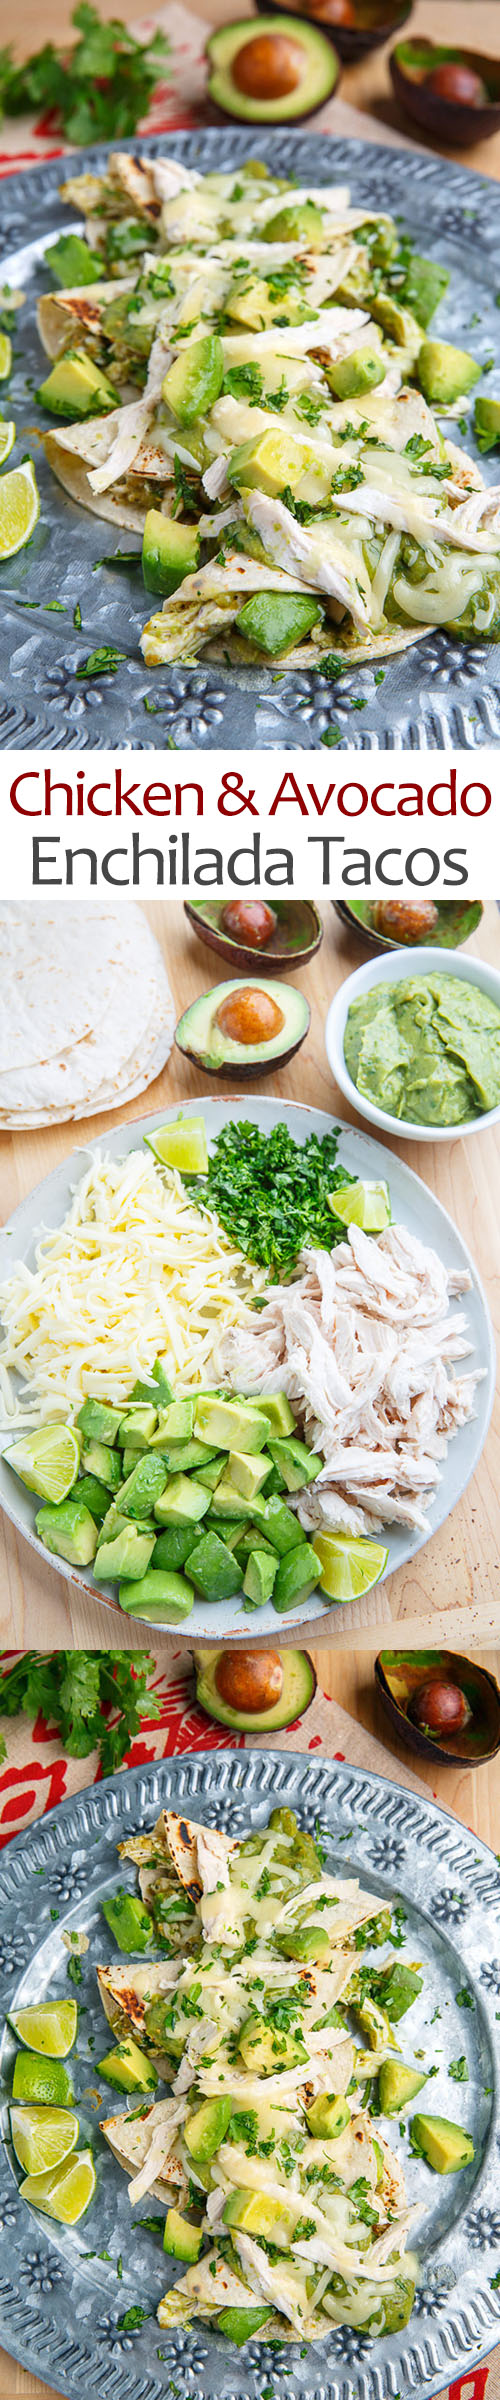 Chicken and Avocado Enchilada Tacos